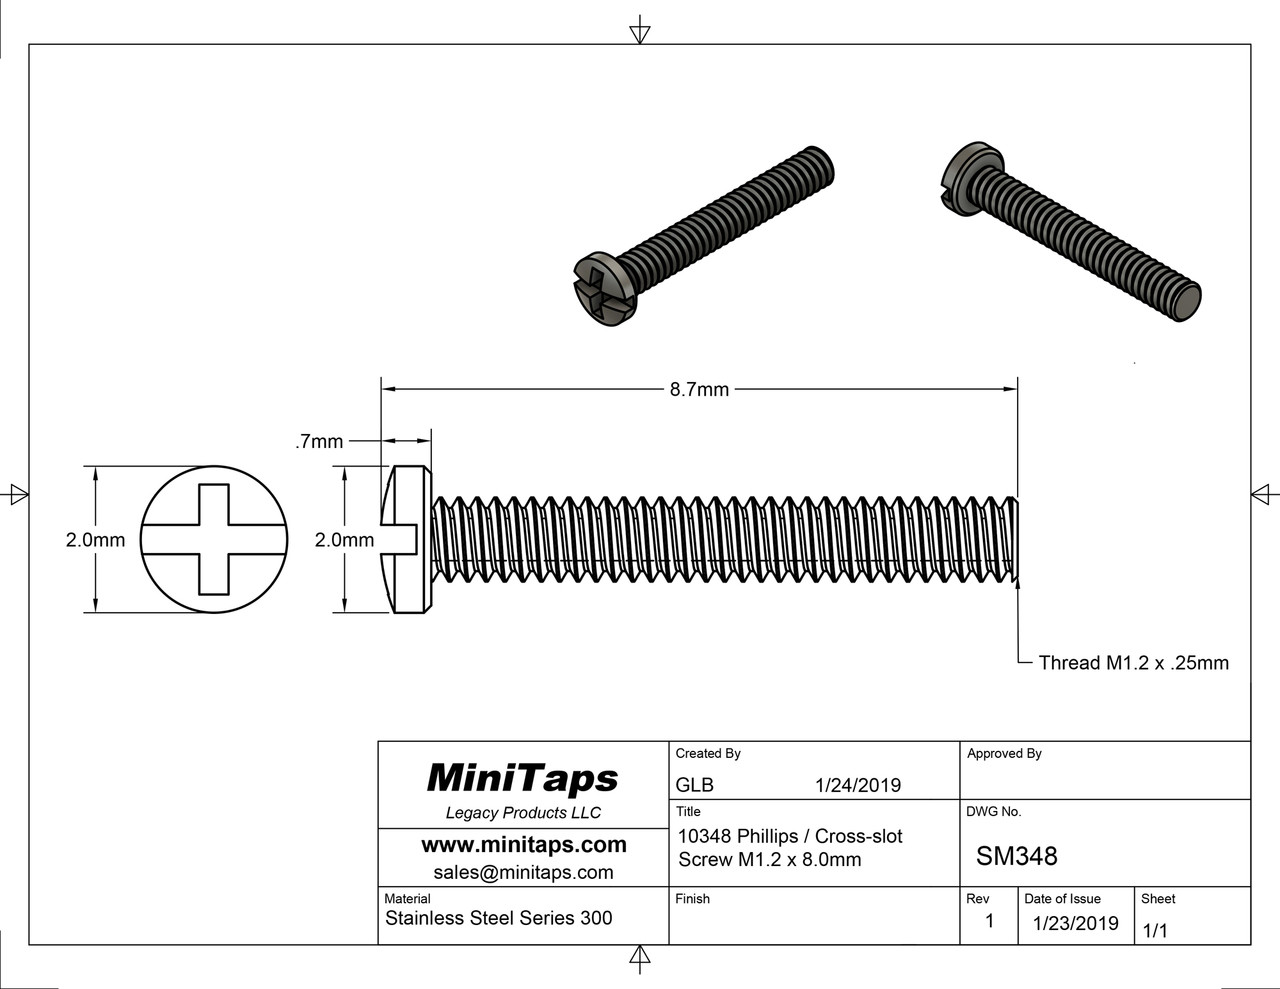 Pan Head Machine Screw Philips X-Slot Drive Thread M1.2 (1.20UNM) Pitch .25mm Threaded Length 8.0mm Overall length 8.7mm Head 2.0mm Stainless Steel Price is for 100 count package